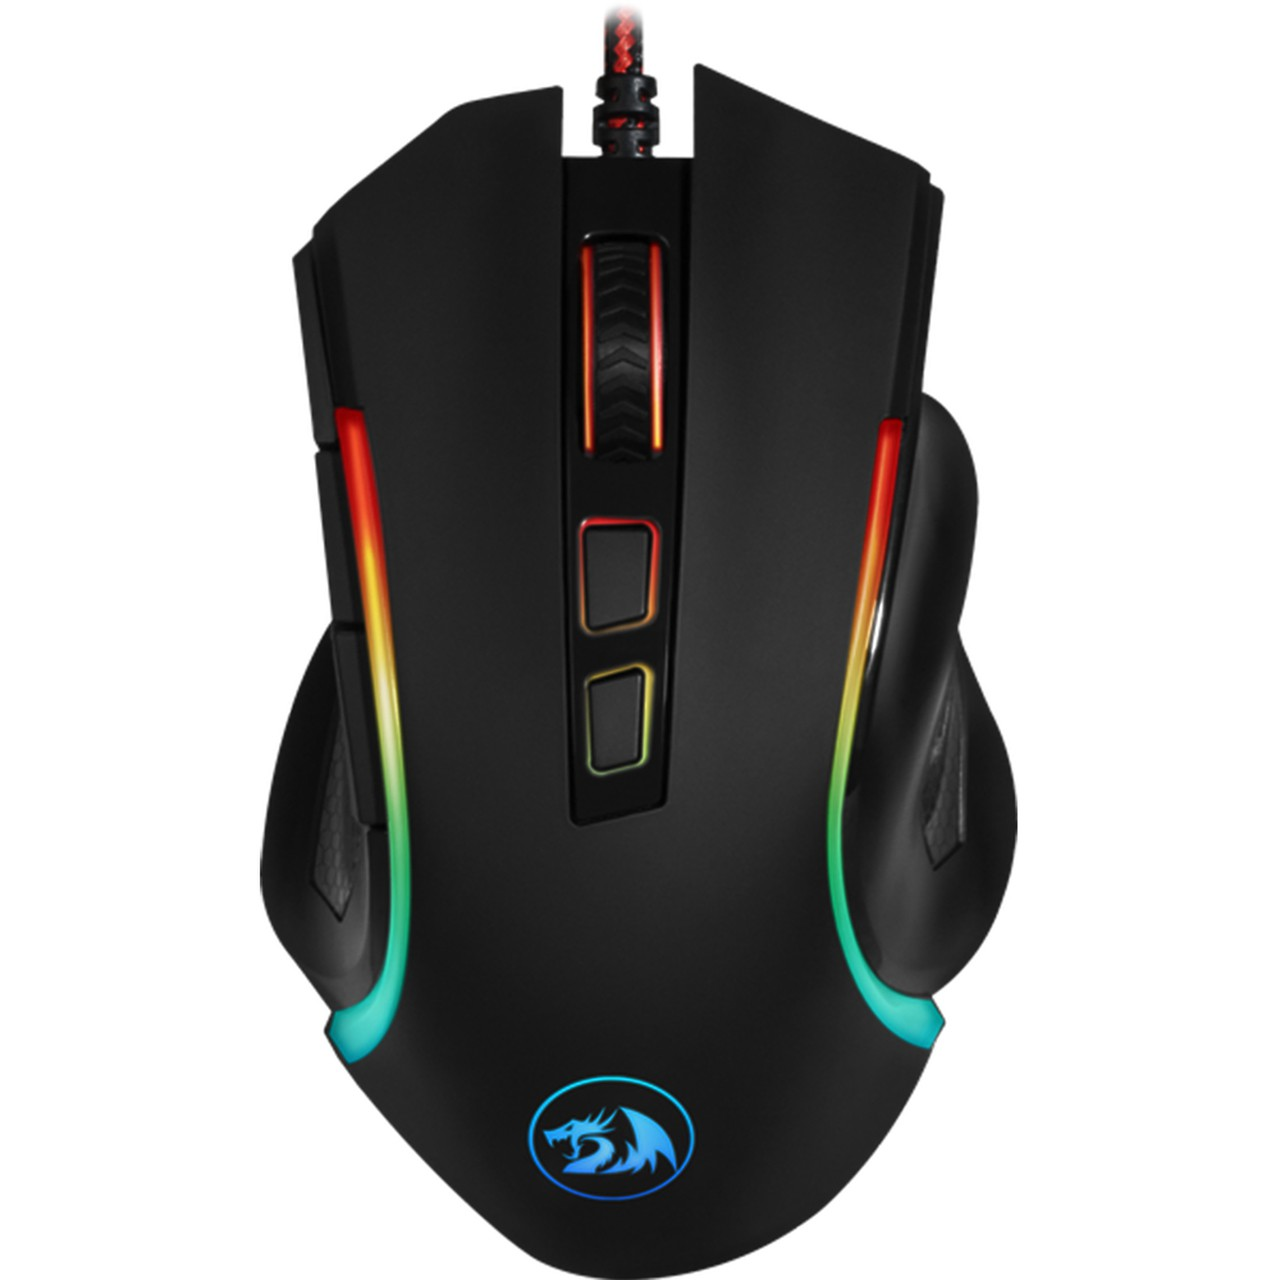 MOUSE GAMER REDRAGON GRIFFIN RGB 7200DPI M607